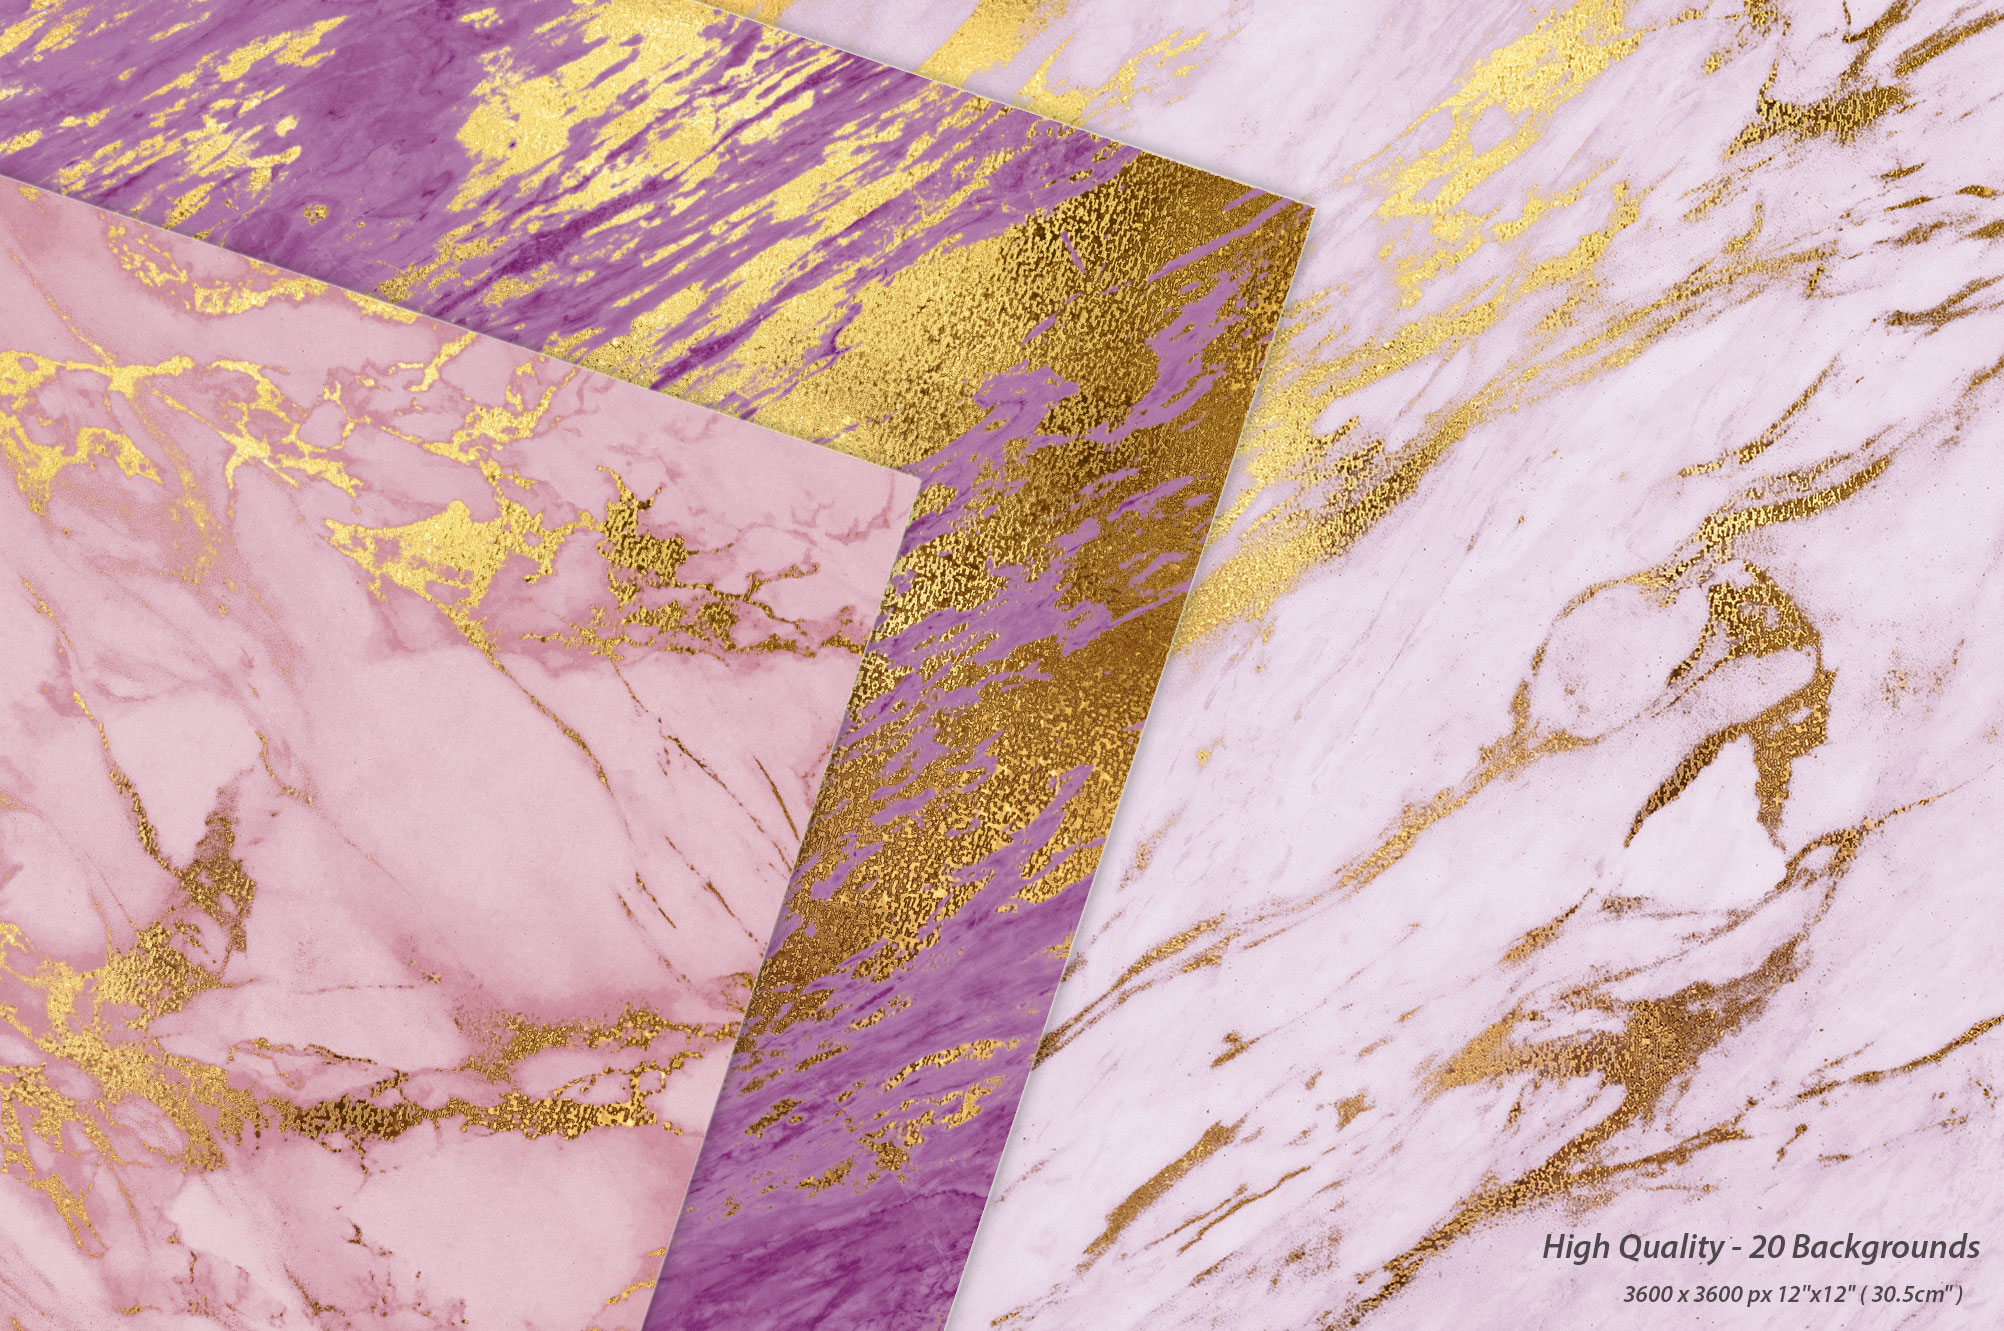 Rose Gold & Purple Marble Textures